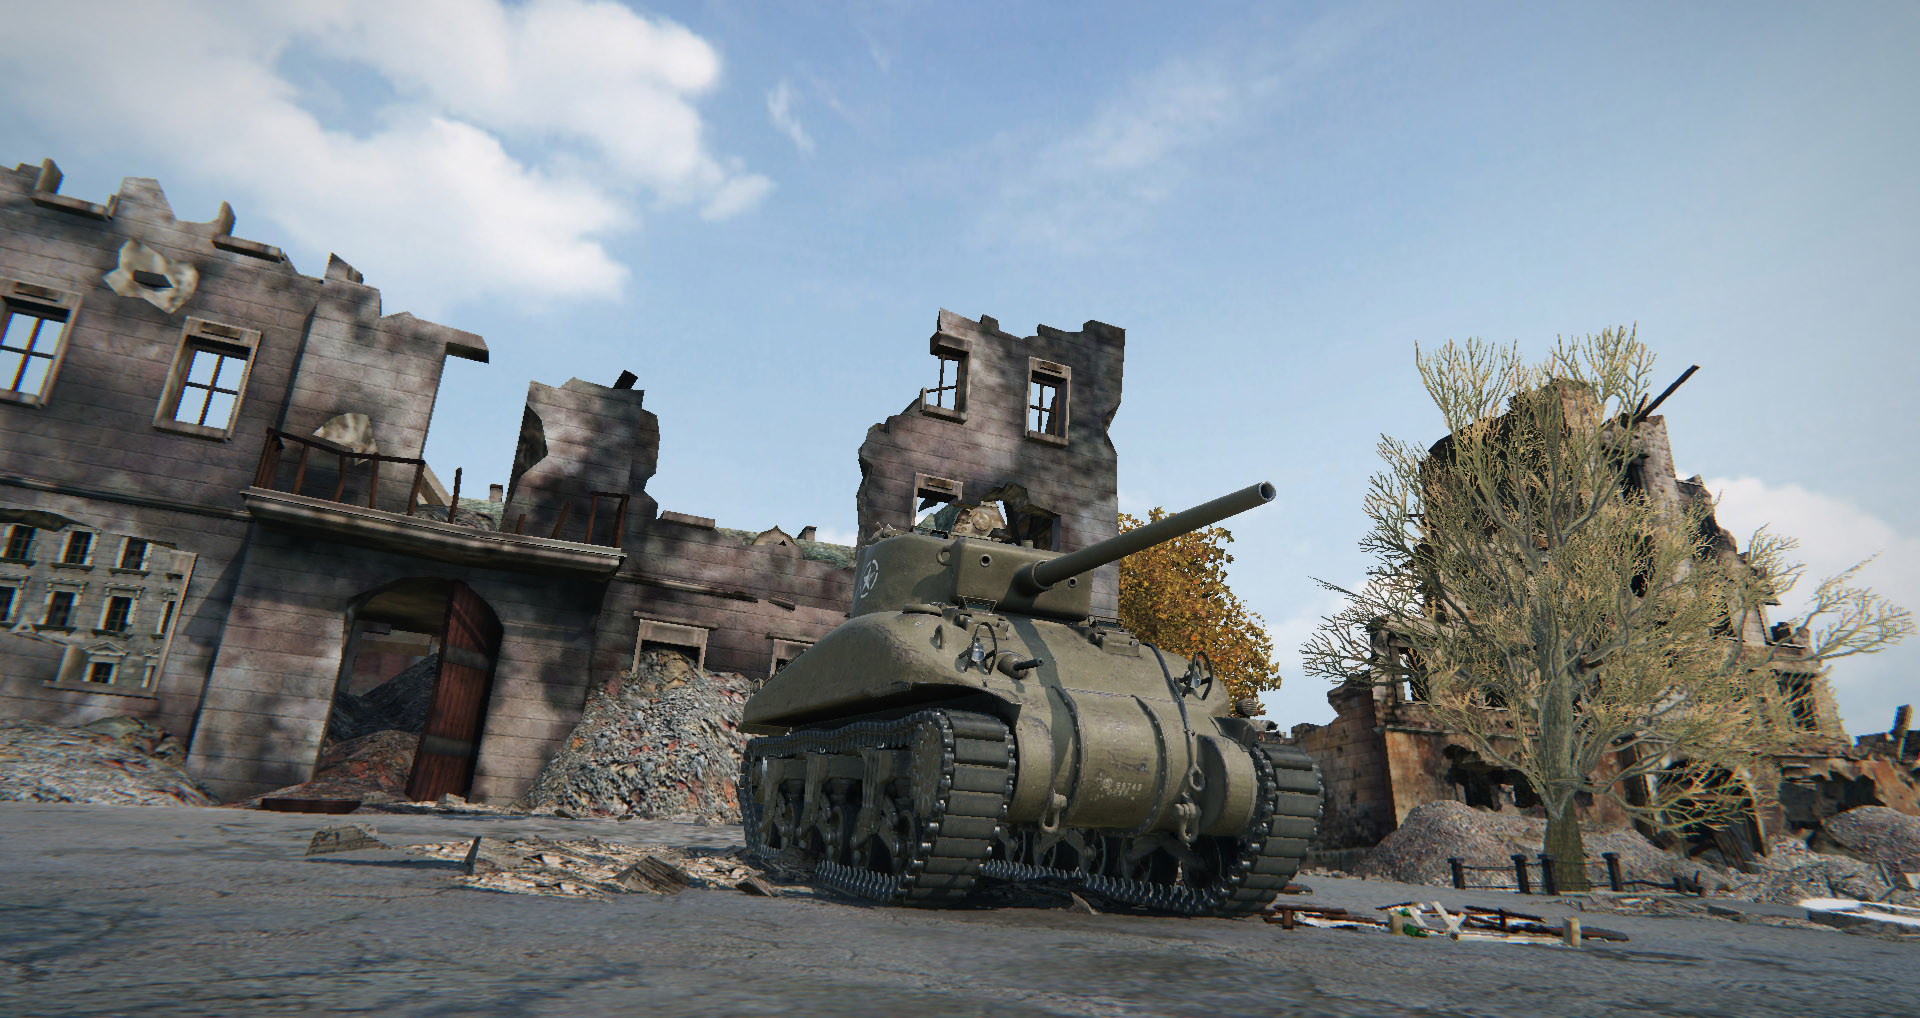 M4 Sherman: An All-Rounder